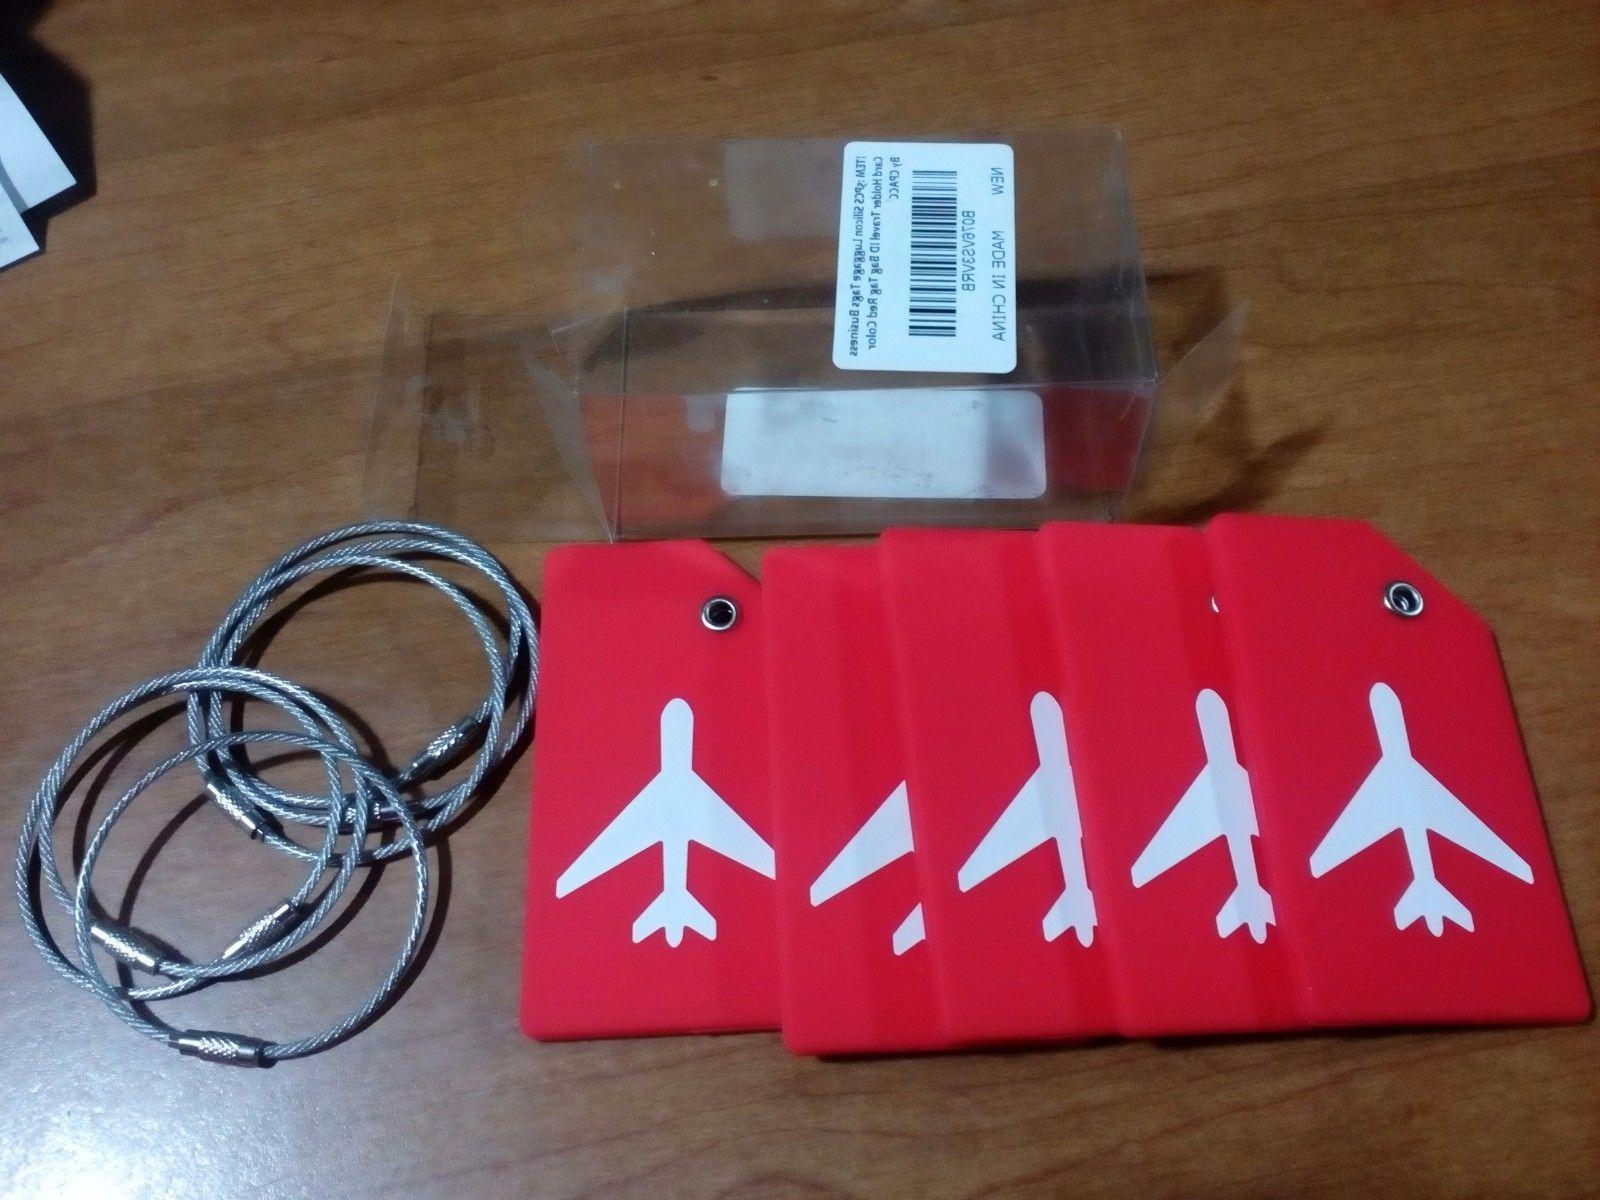 5PCS Silicon Luggage Tags Business Card Holder Travel ID Bag